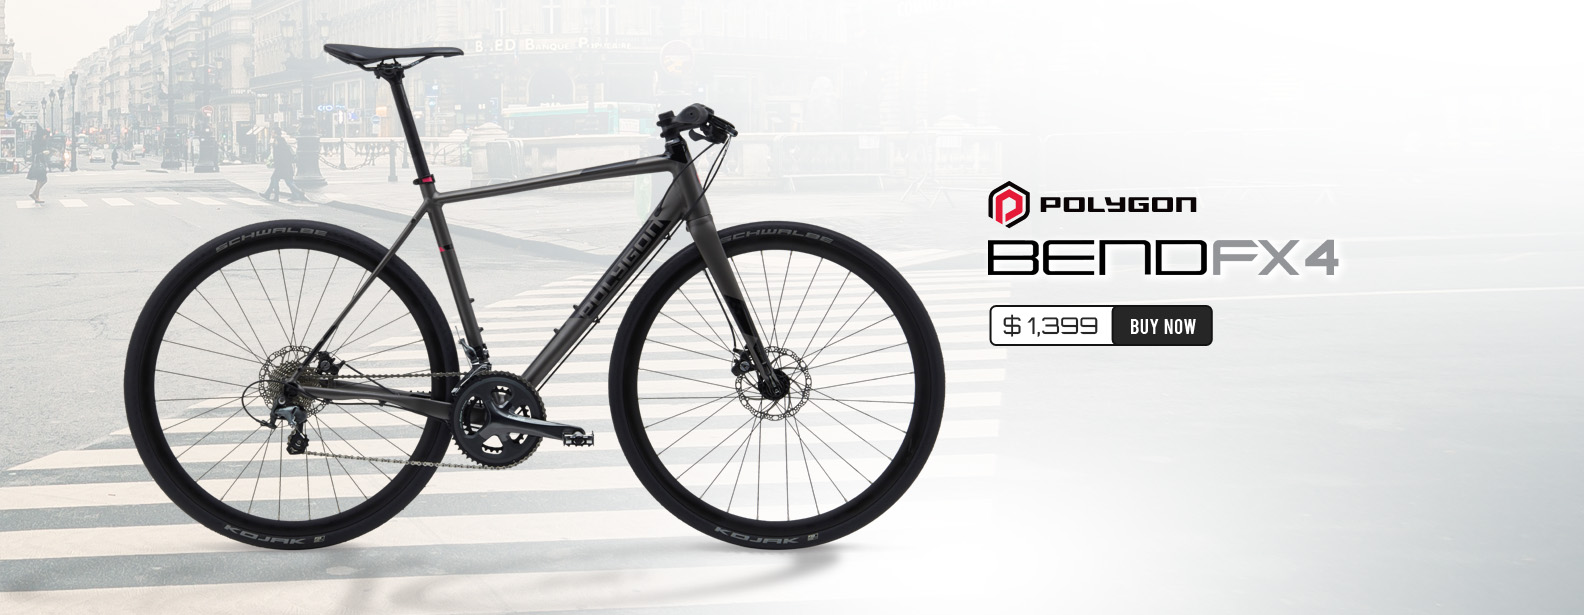 Polygon Bend FX4 Urban Sport Road Bike